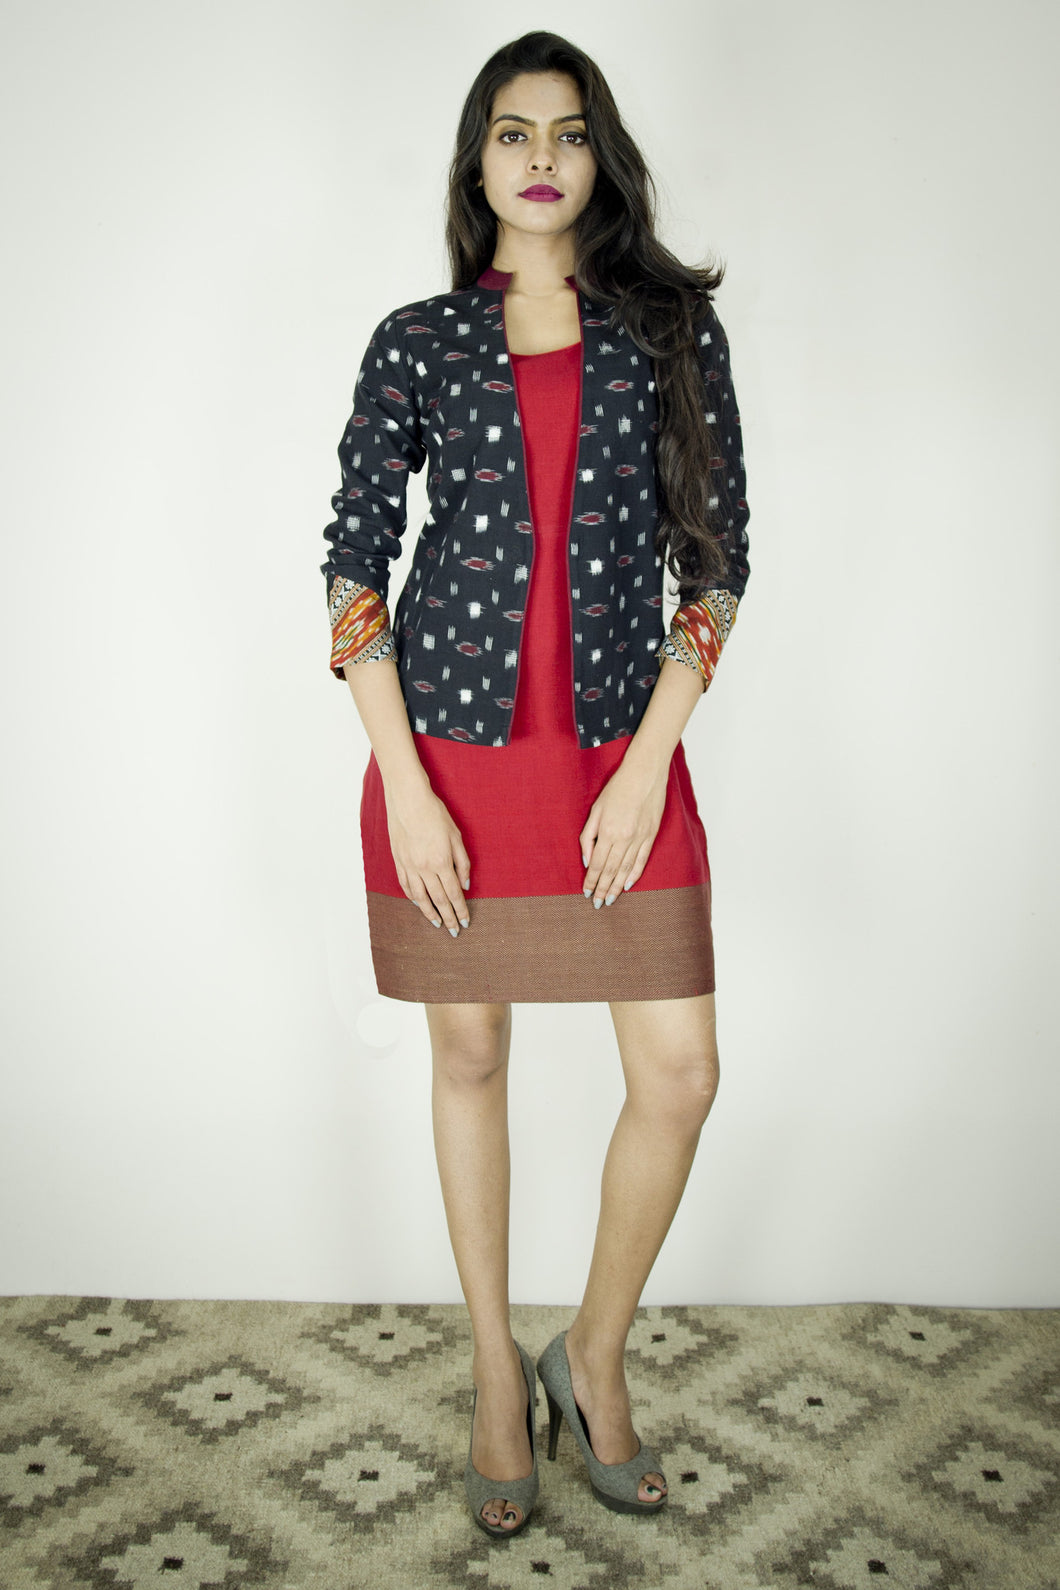 Model is wearing lattice jacket in black maroon white geometric ikat. It is paired with the red bloom dress.